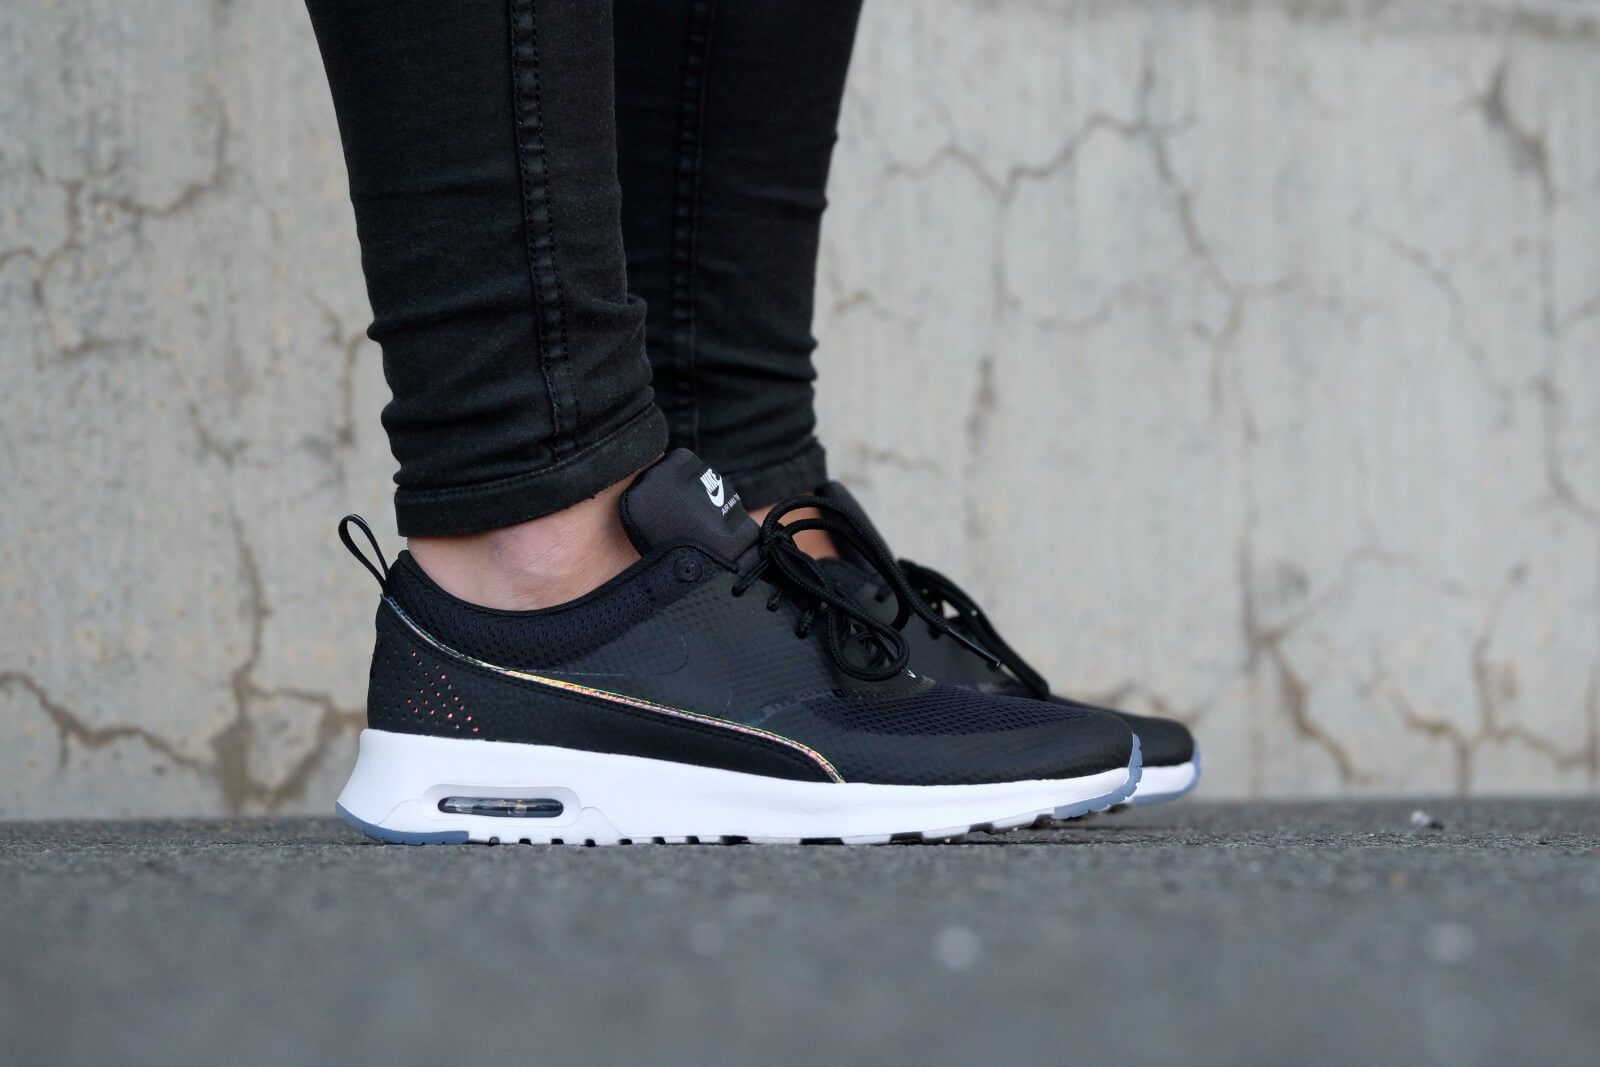 hot sale online 9e5e3 336f8 Nike Air Max Thea Premium Black Blue Tint Women s Shoes